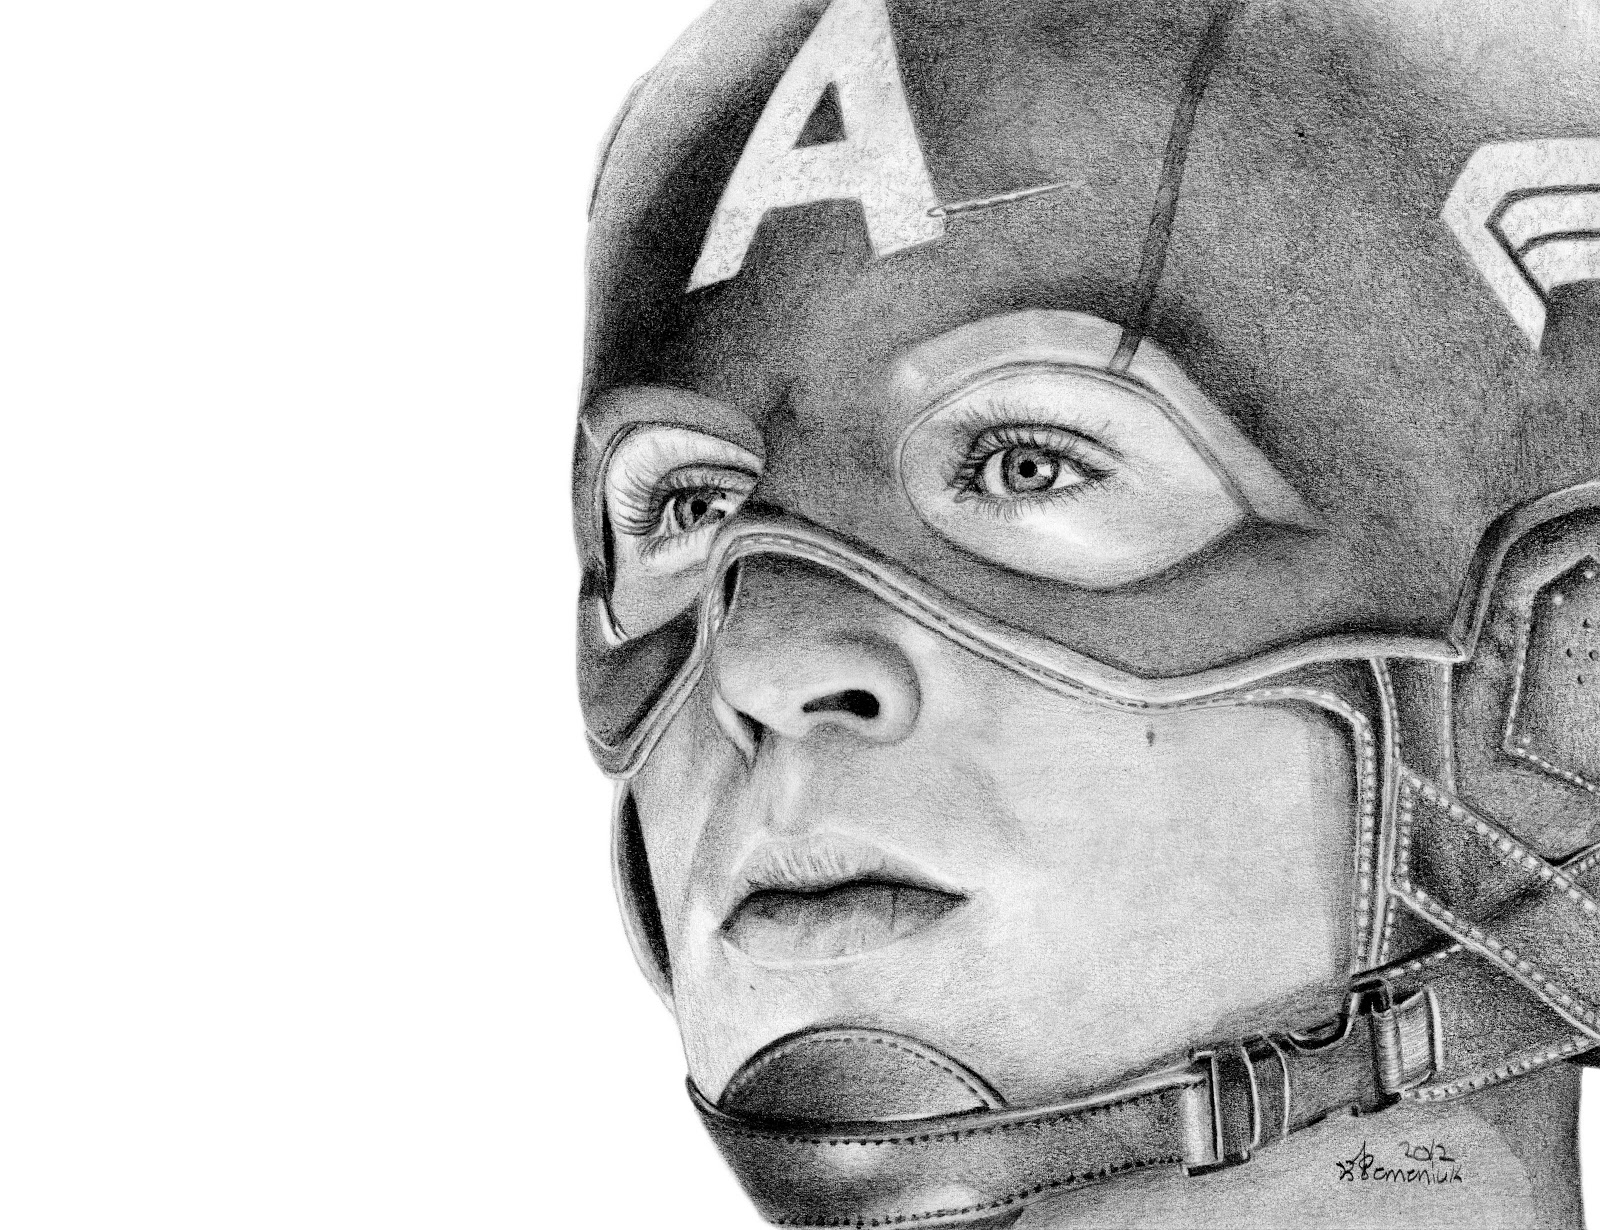 captain america pictures personnages celebres comics captain america 17623png captain america pictures